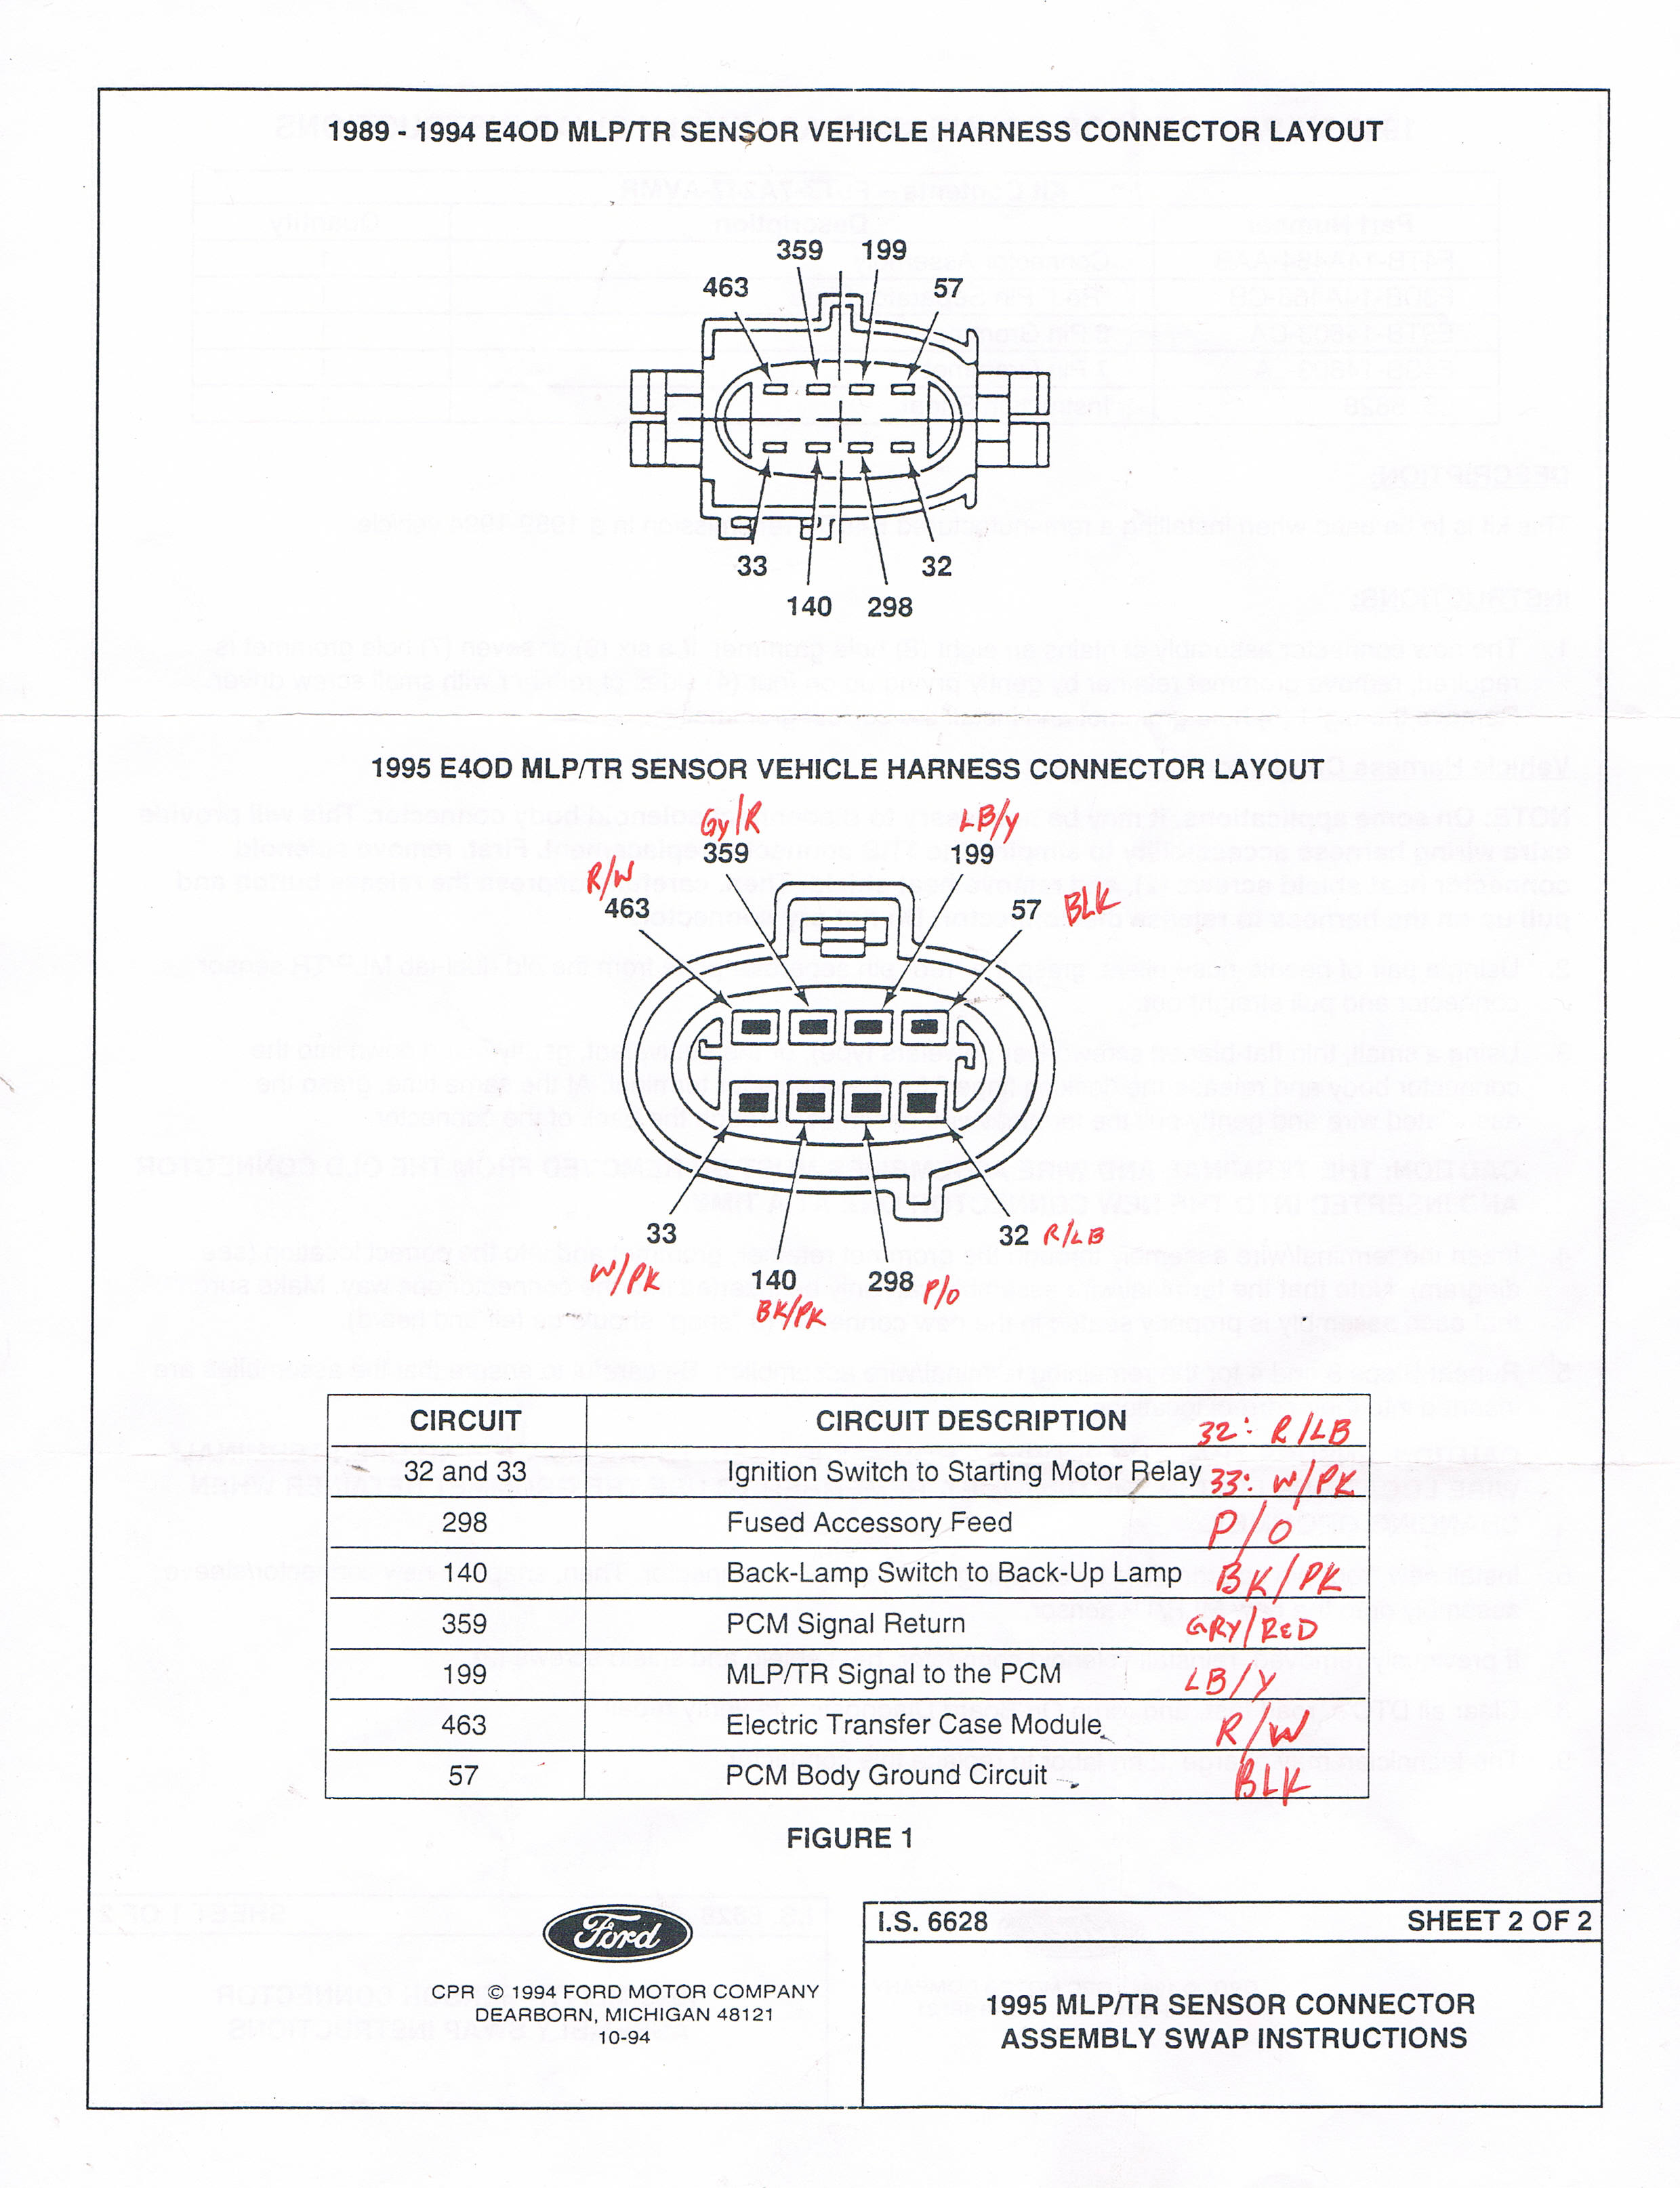 ccf12192012_00000 january 2013 the transletter e4od wiring harness diagram at aneh.co